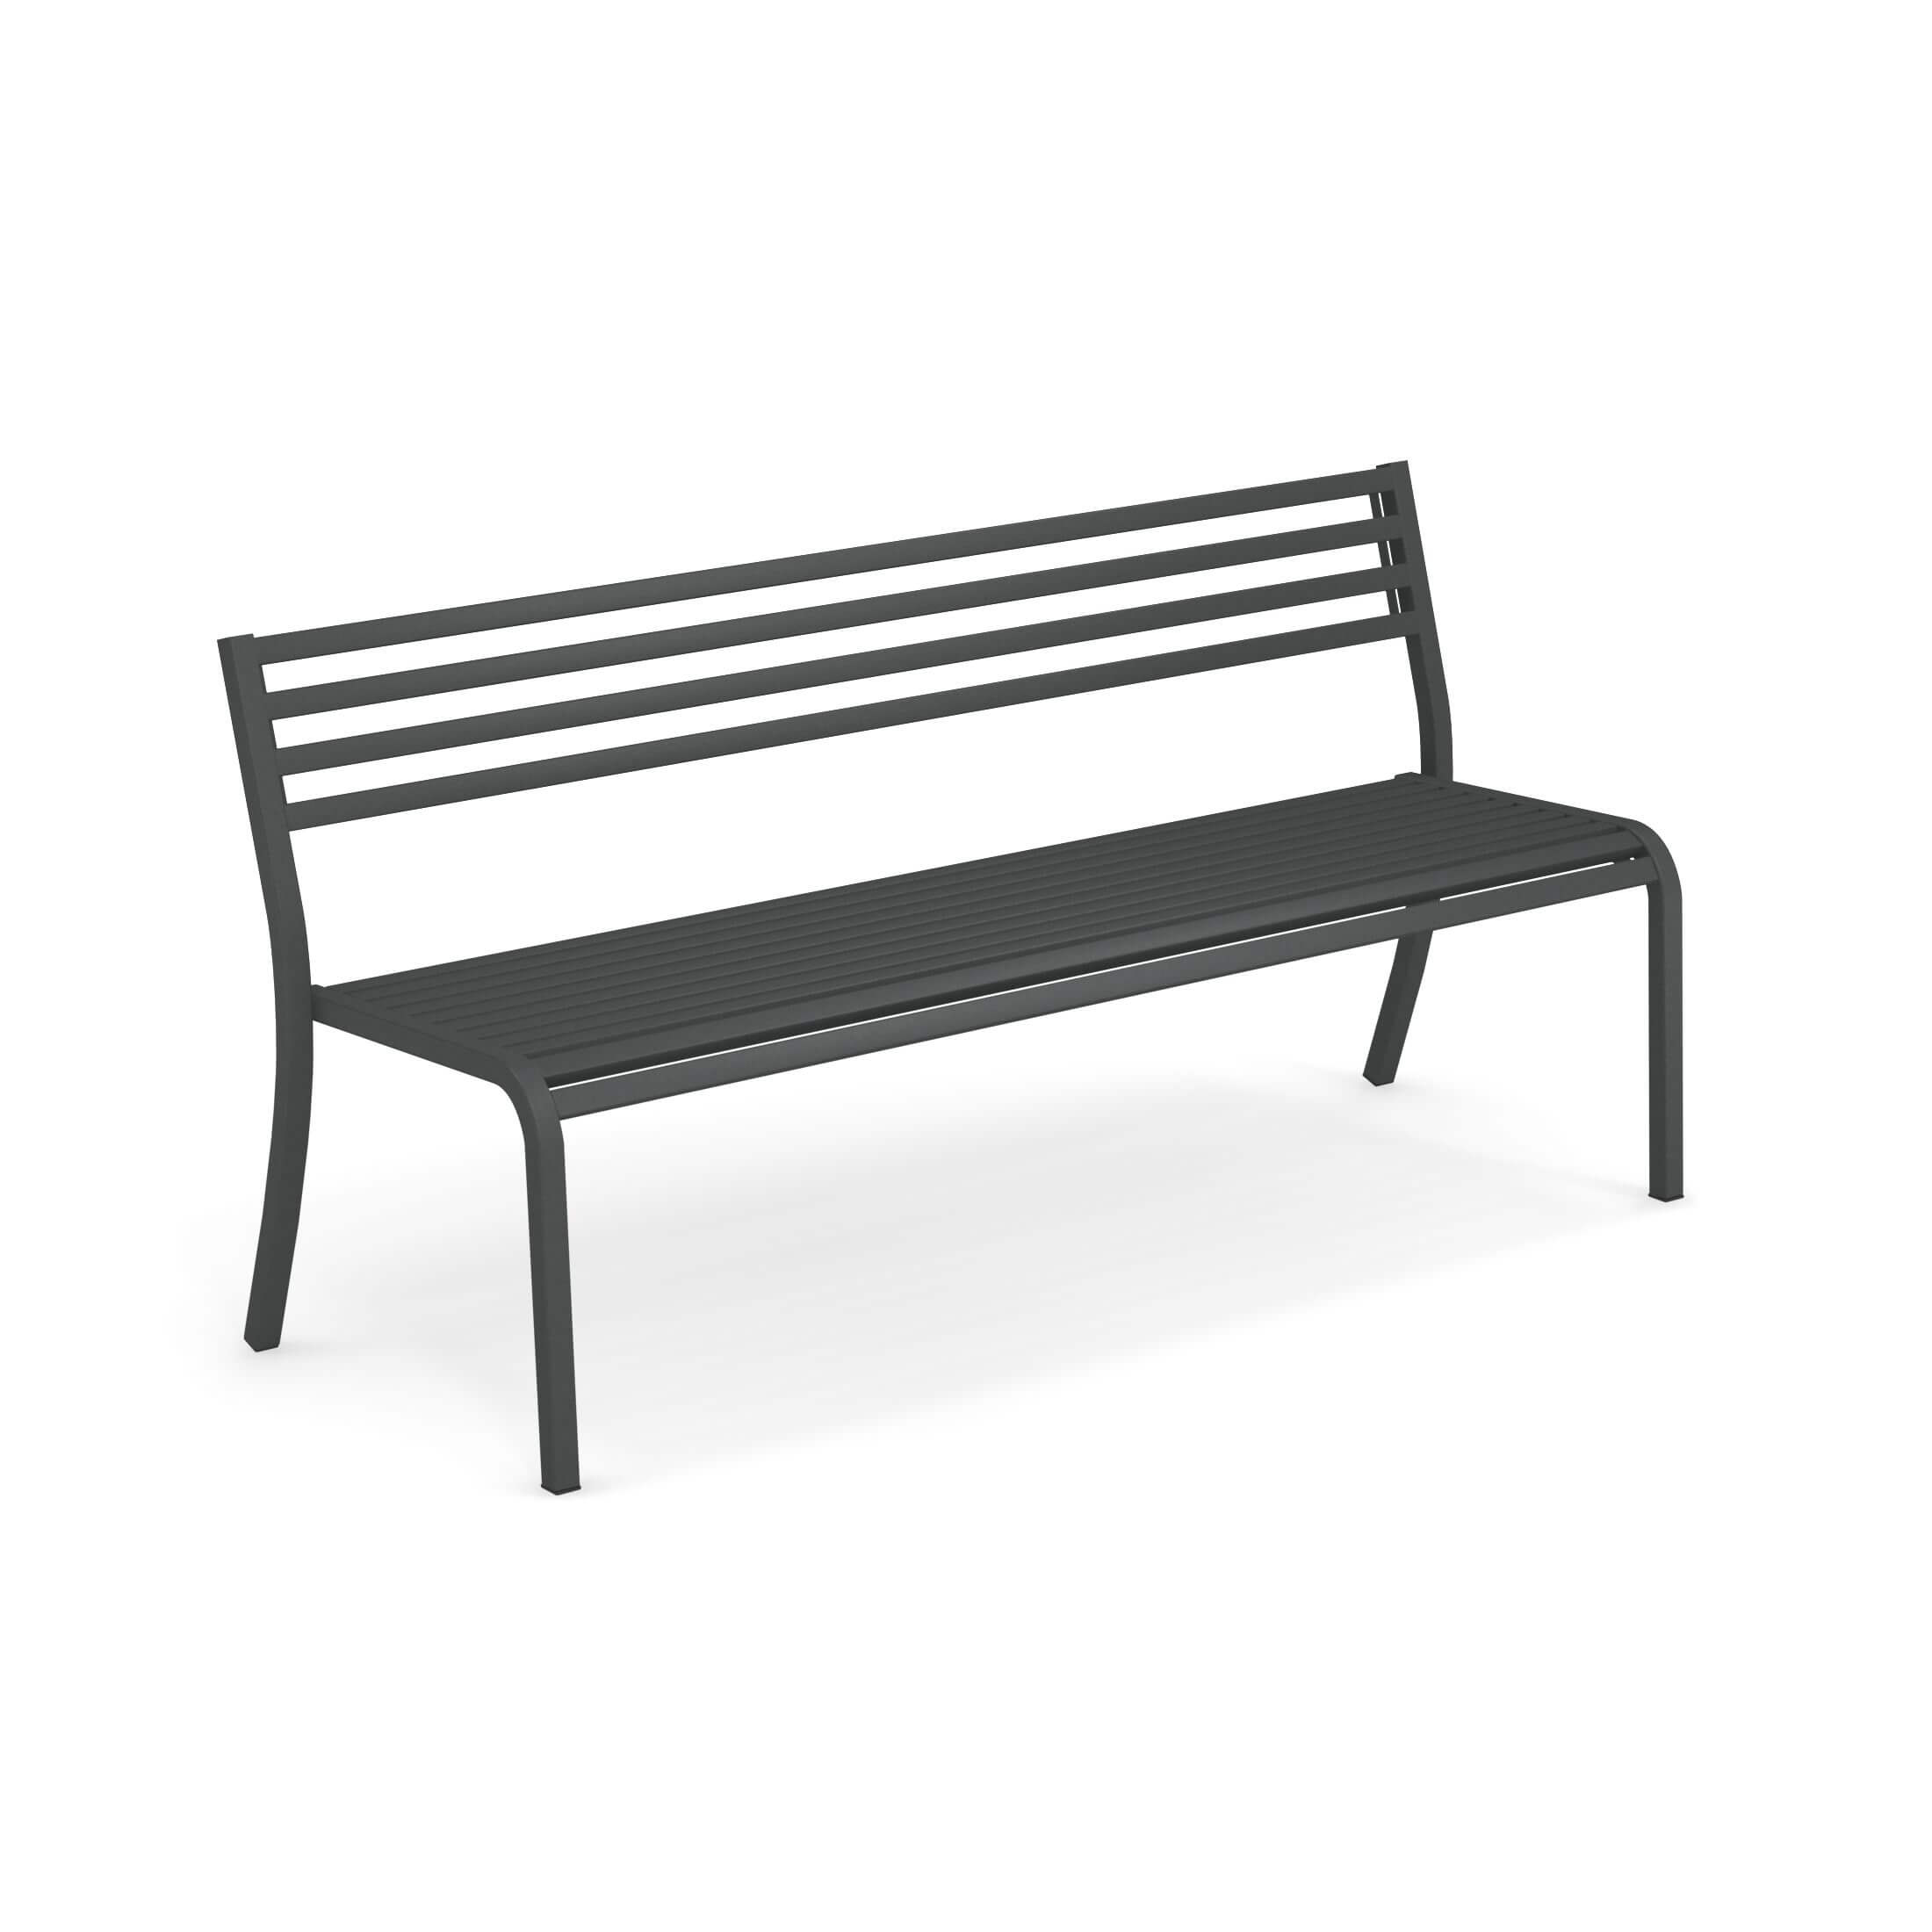 Stupendous Garden Bench Outside In Steel Collection Segno Andrewgaddart Wooden Chair Designs For Living Room Andrewgaddartcom